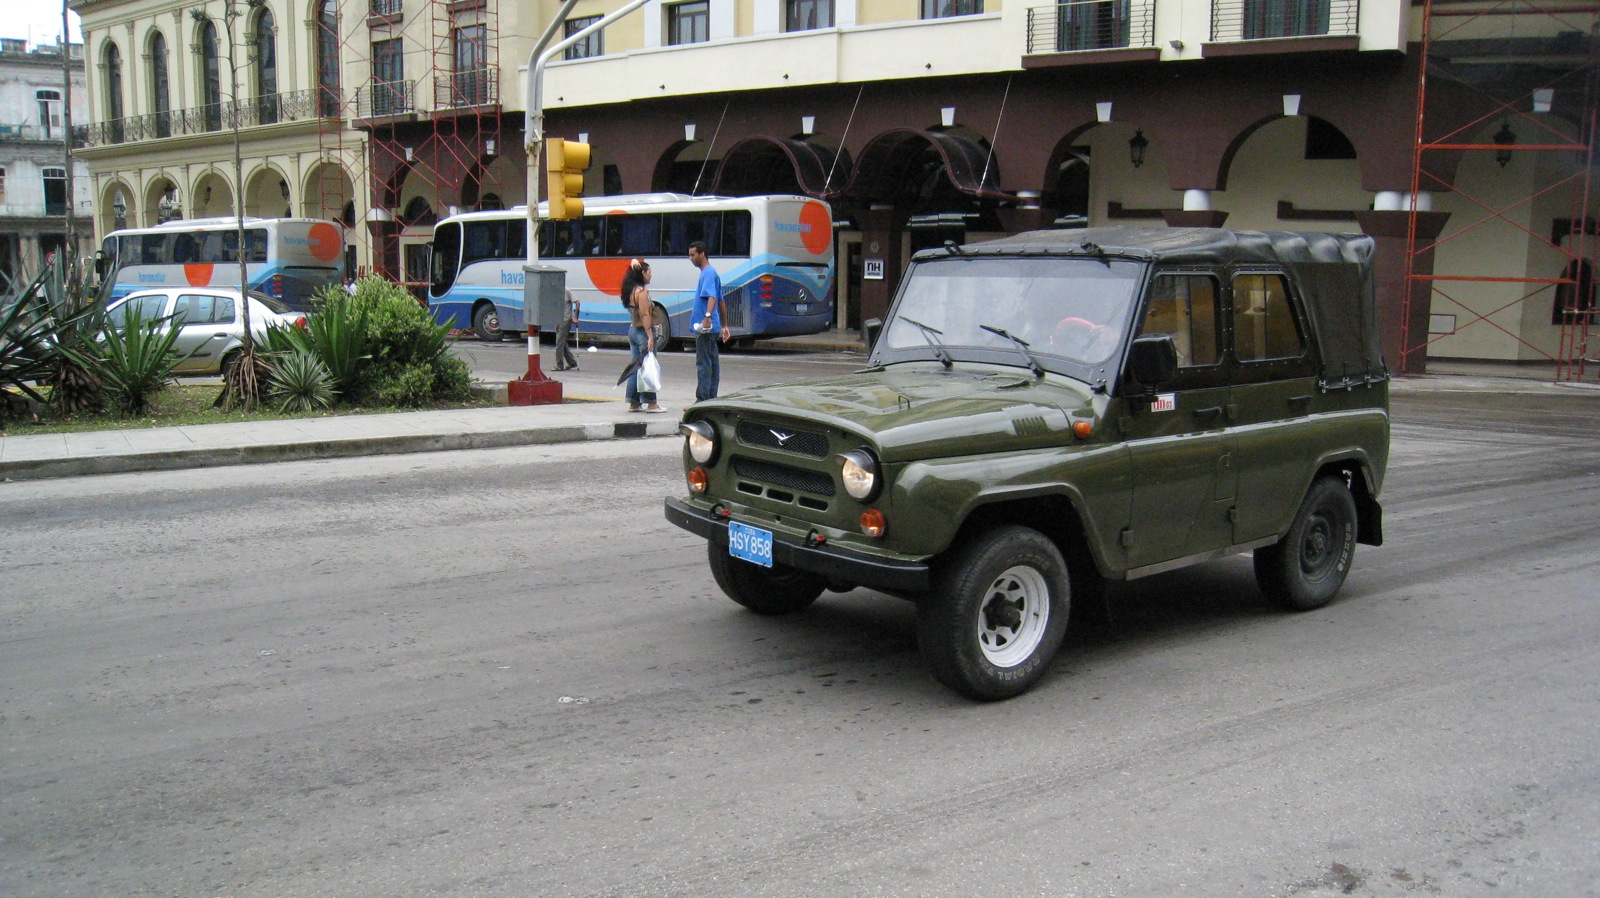 File:UAZ-469 in Havana, Cuba.jpg - Wikimedia Commons